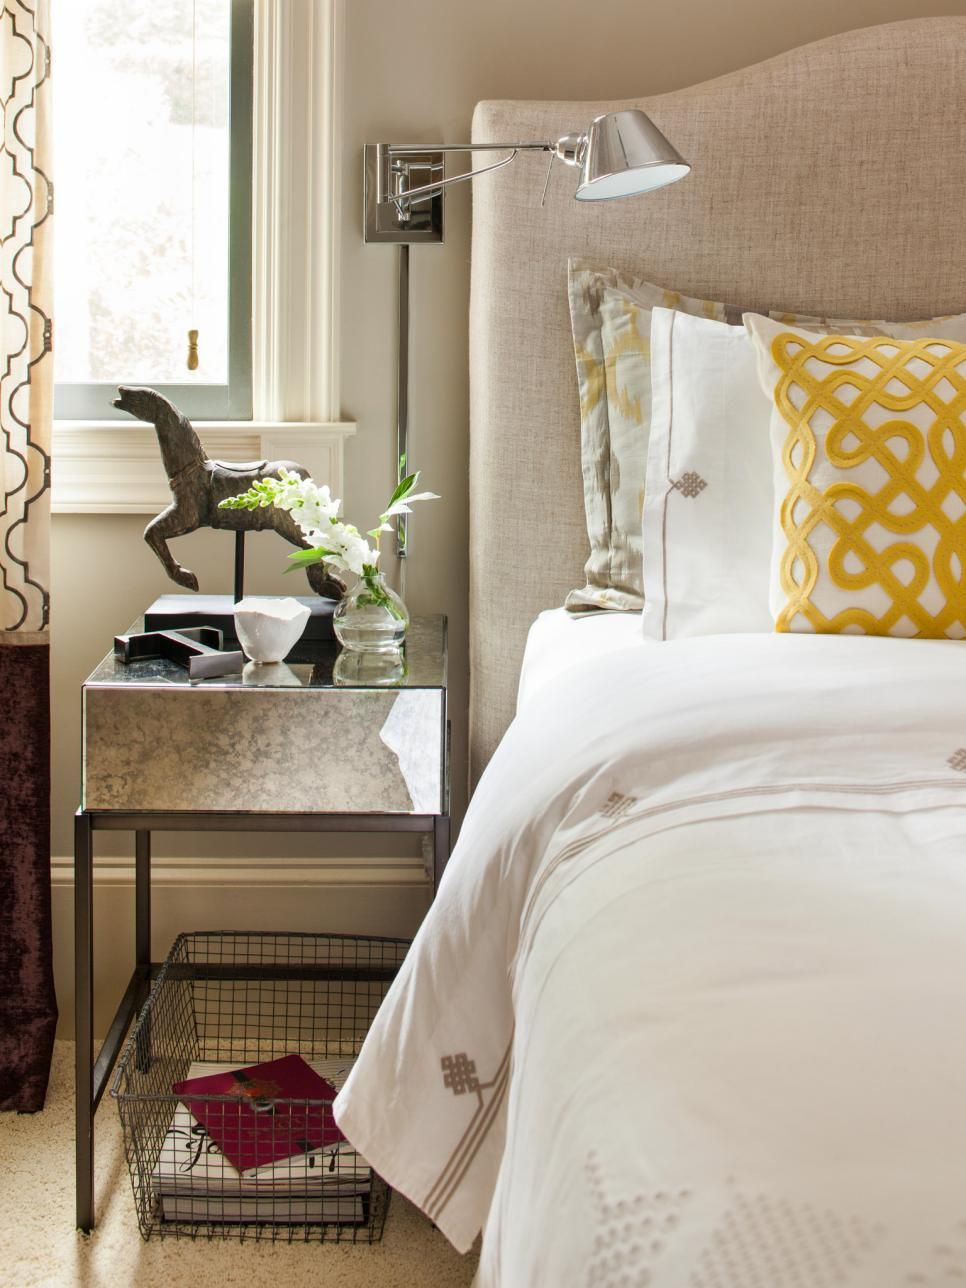 Make Your Budget Look Like a Luxury Hotel Room | Bedrooms, Room ...